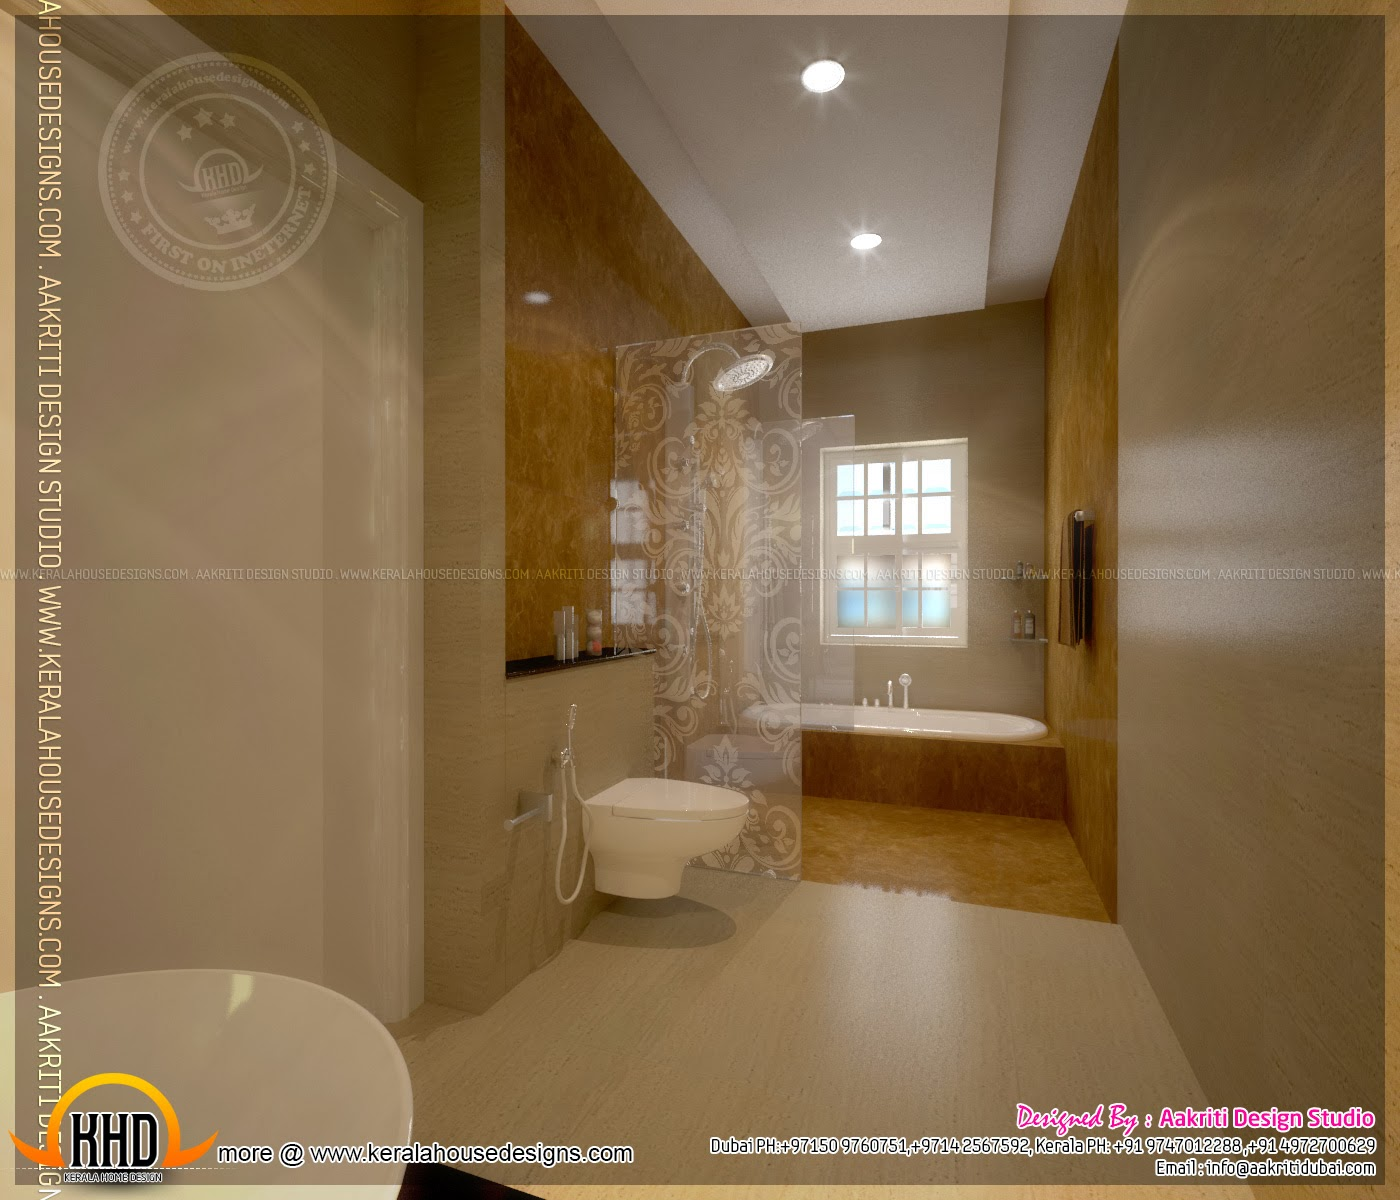 Images Of Small Bathroom Designs In India: Master Bedroom And Bathroom Interior Design